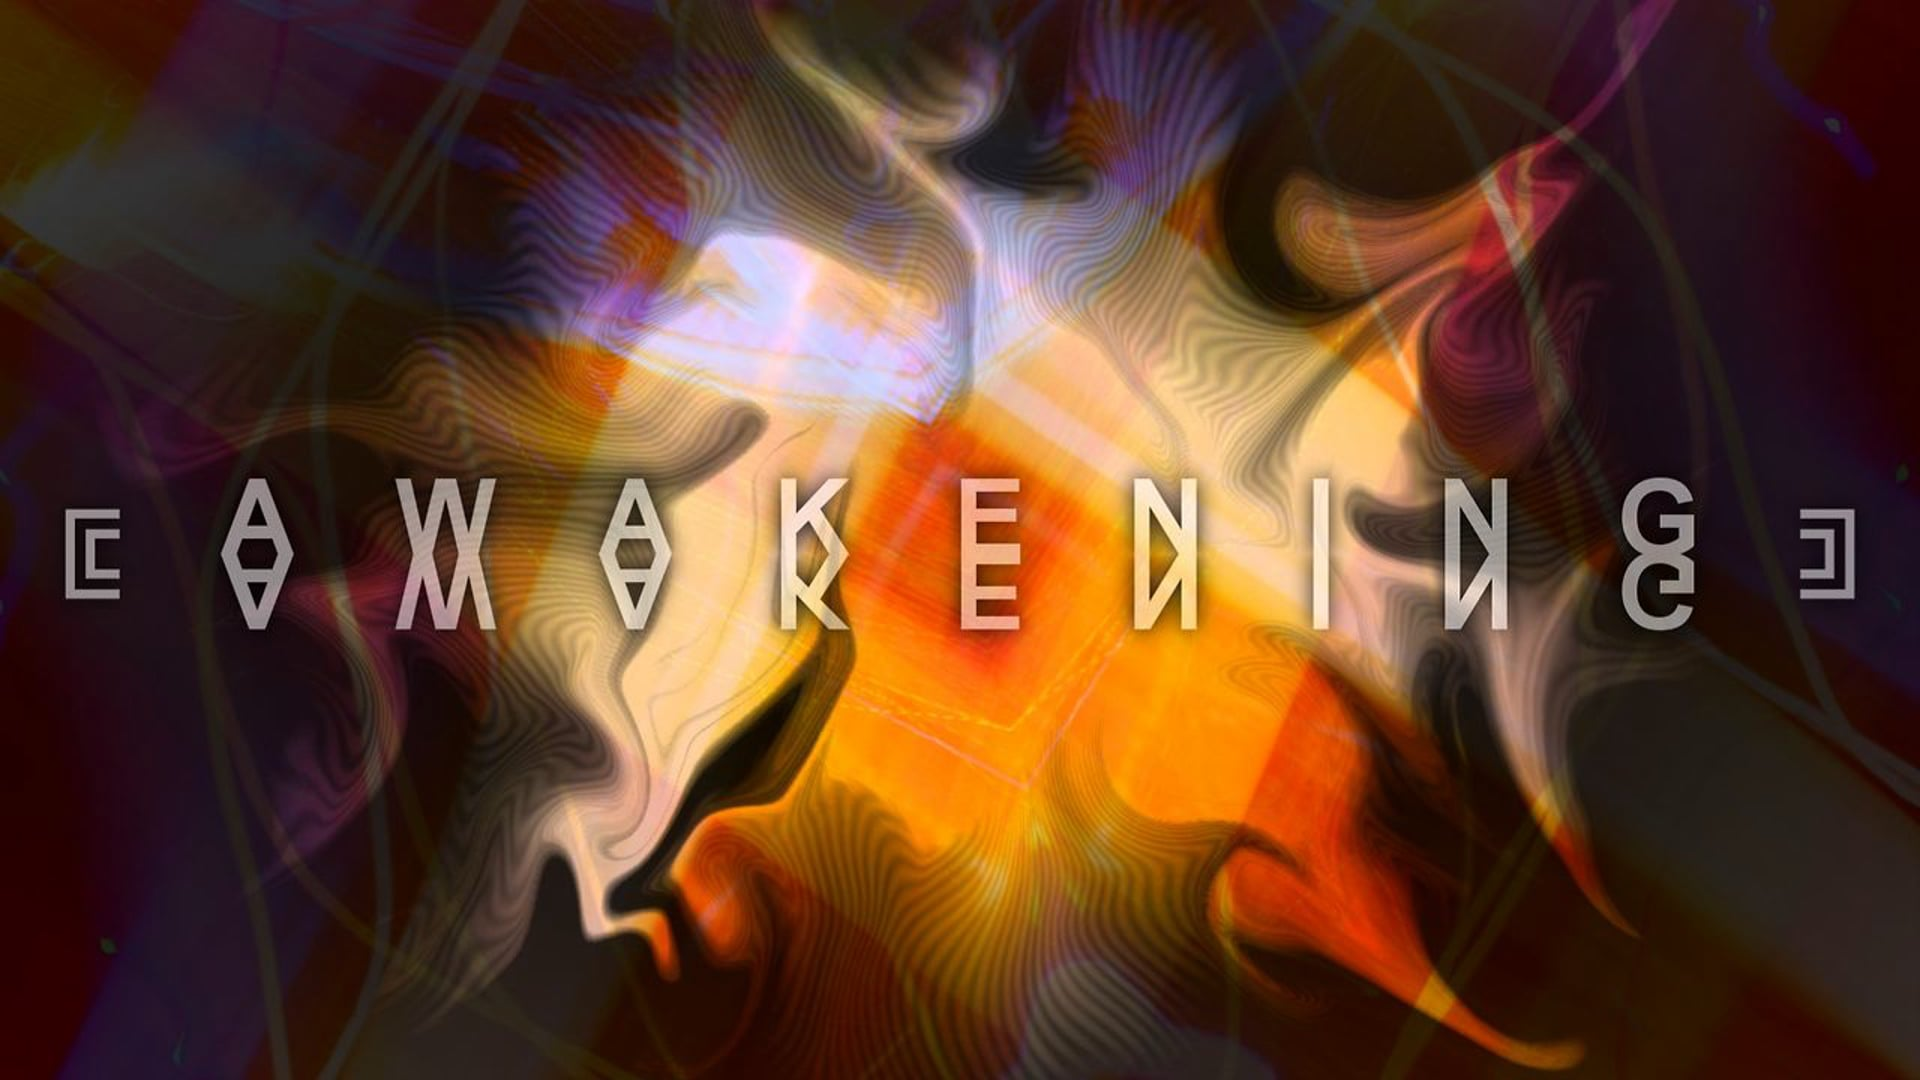 AWAKENING 卐 A Psychedelic Experience